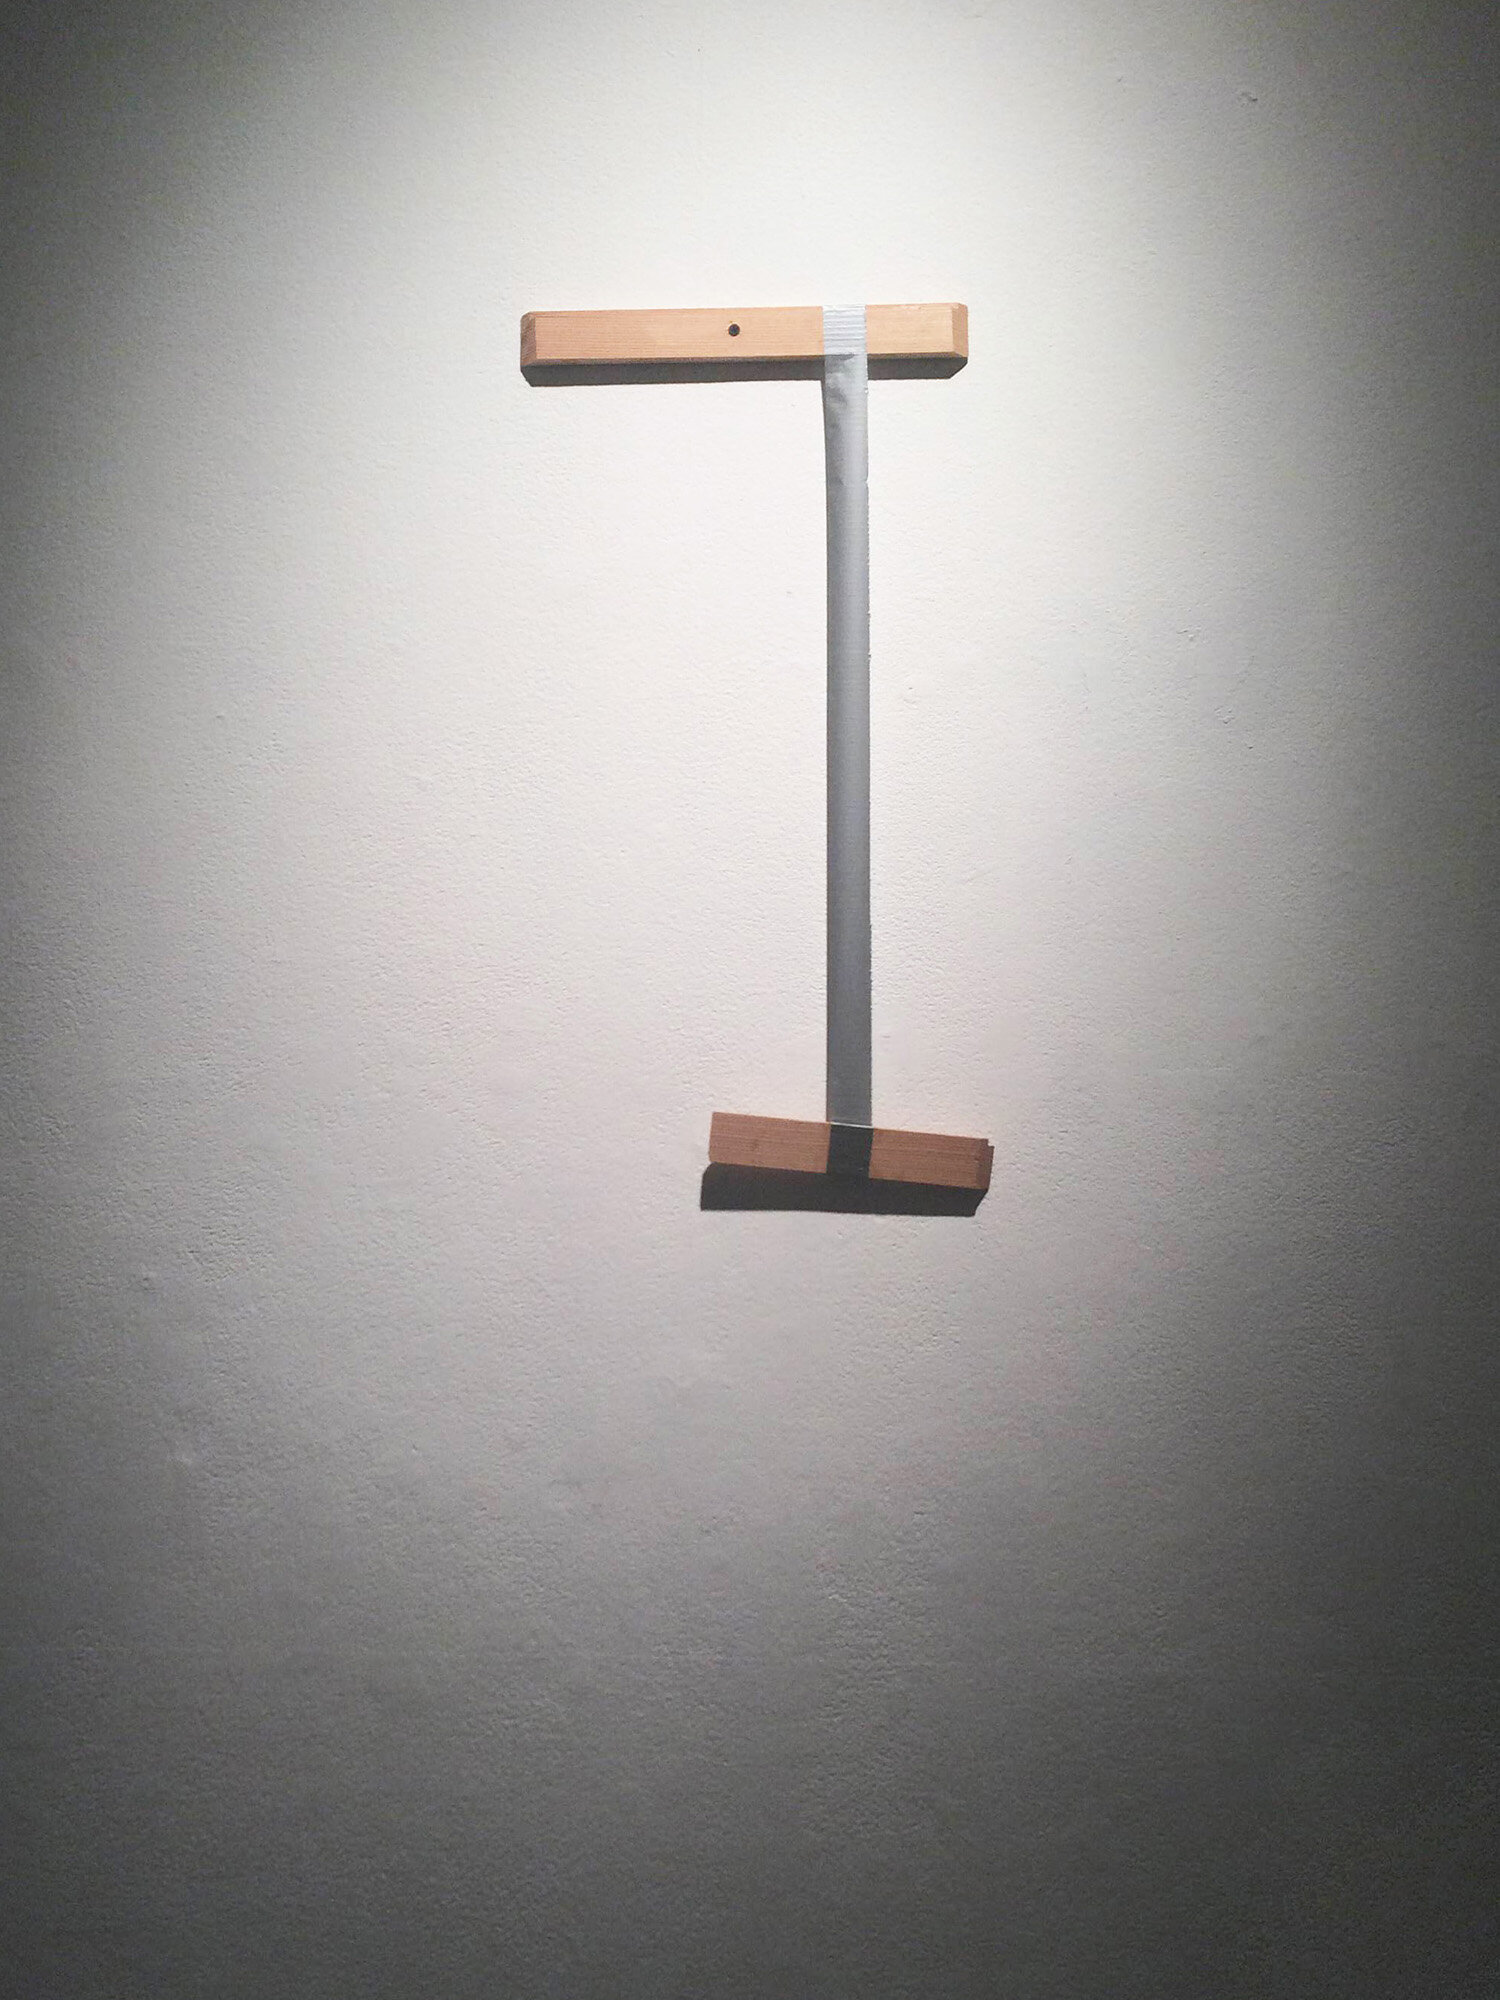 Taped Wood , 2014, duct tape, wood, 18 x 10 x 1 inches.